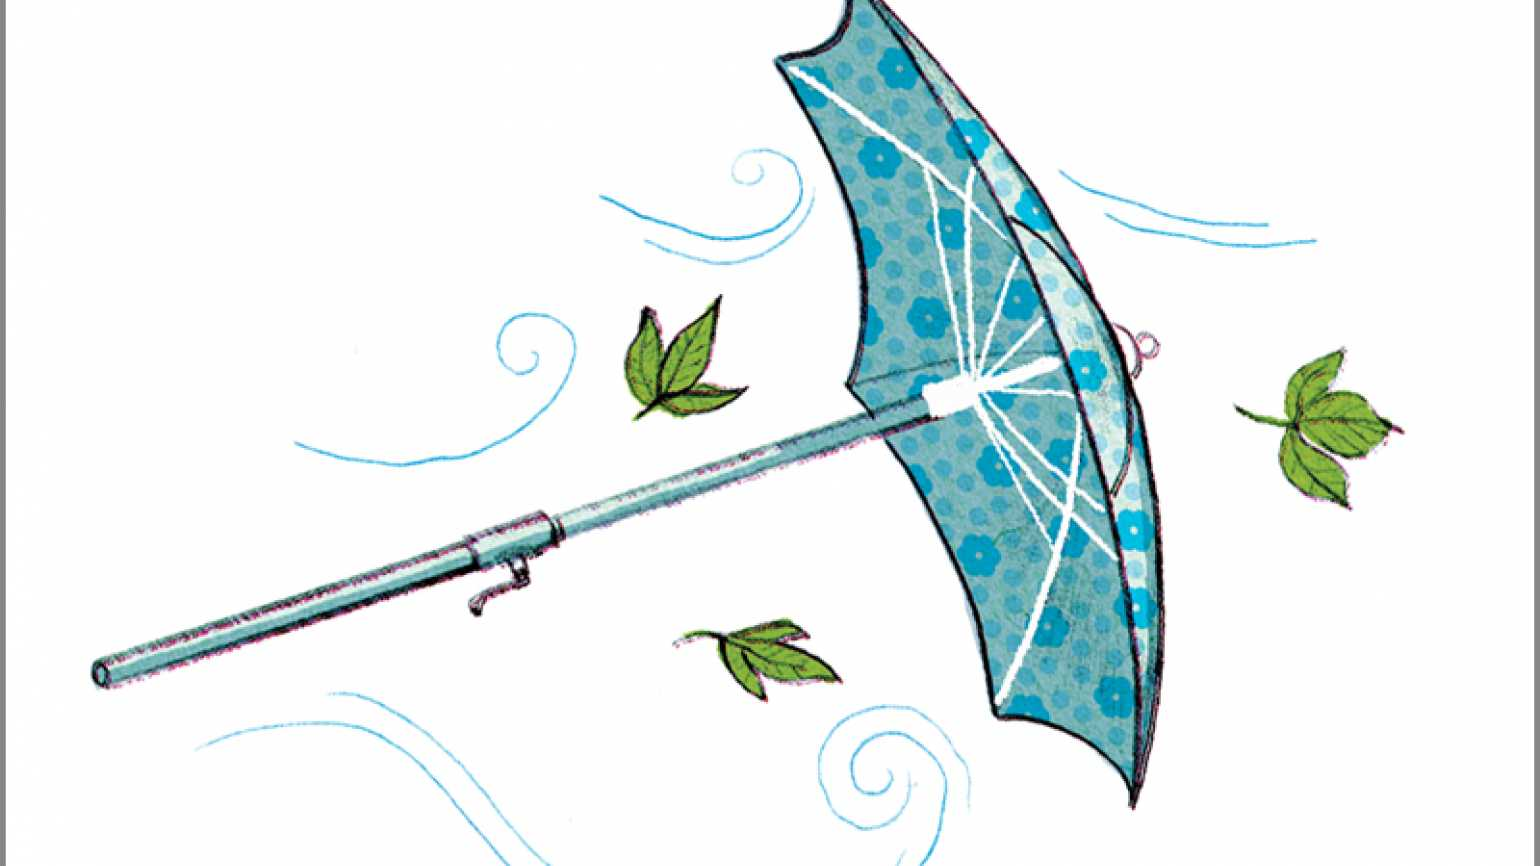 An artist's rendering of a wind-tossed patio umbrella